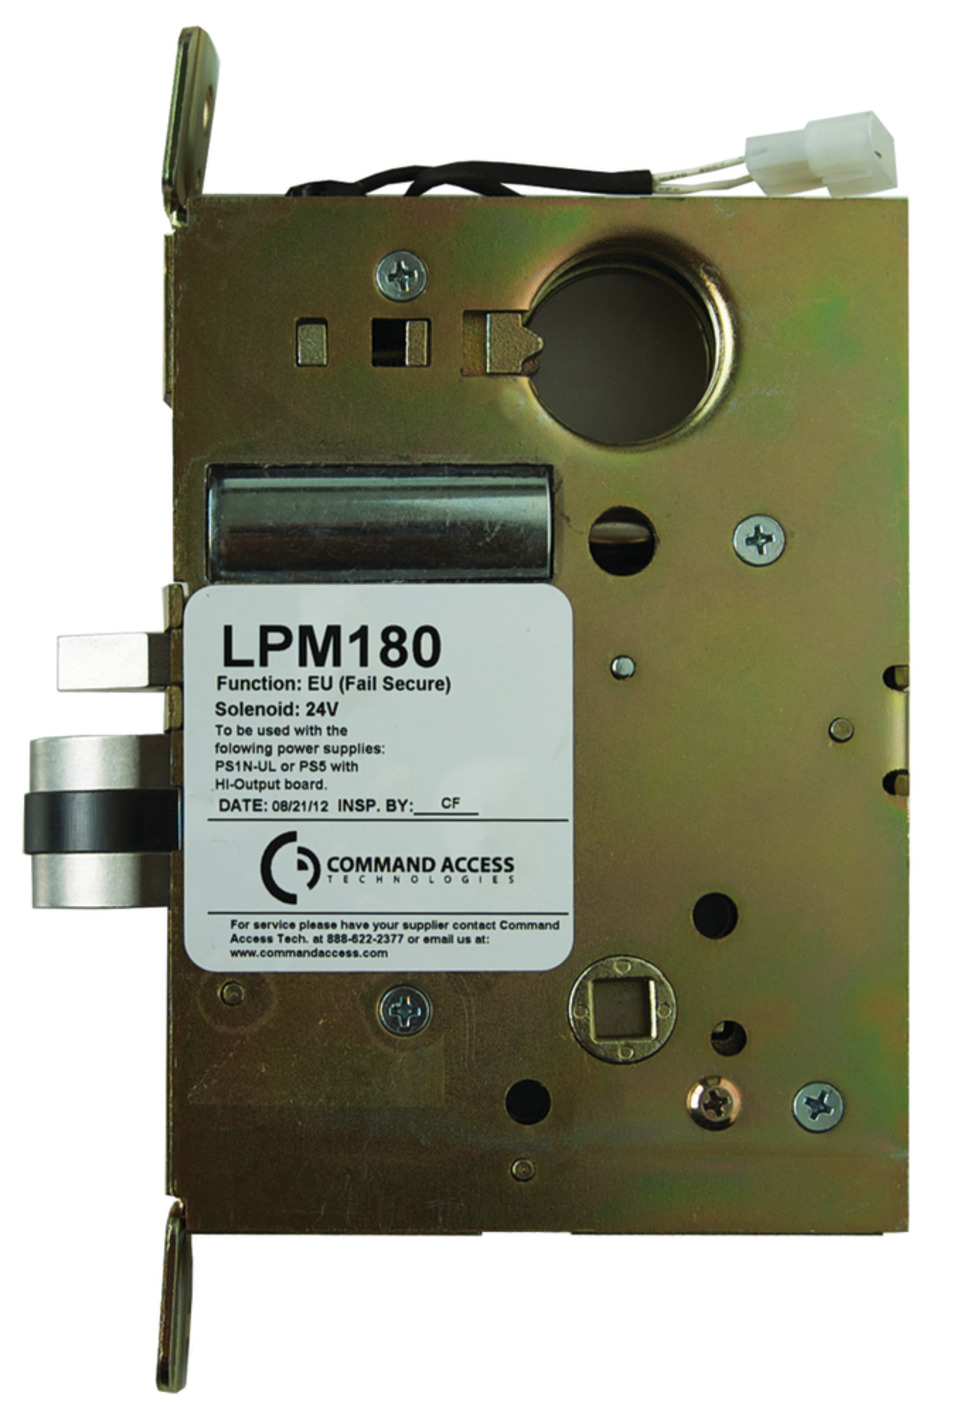 hight resolution of  apc electrified mortise lock command access lpm180 on taylor wiring diagram dremel wiring diagram